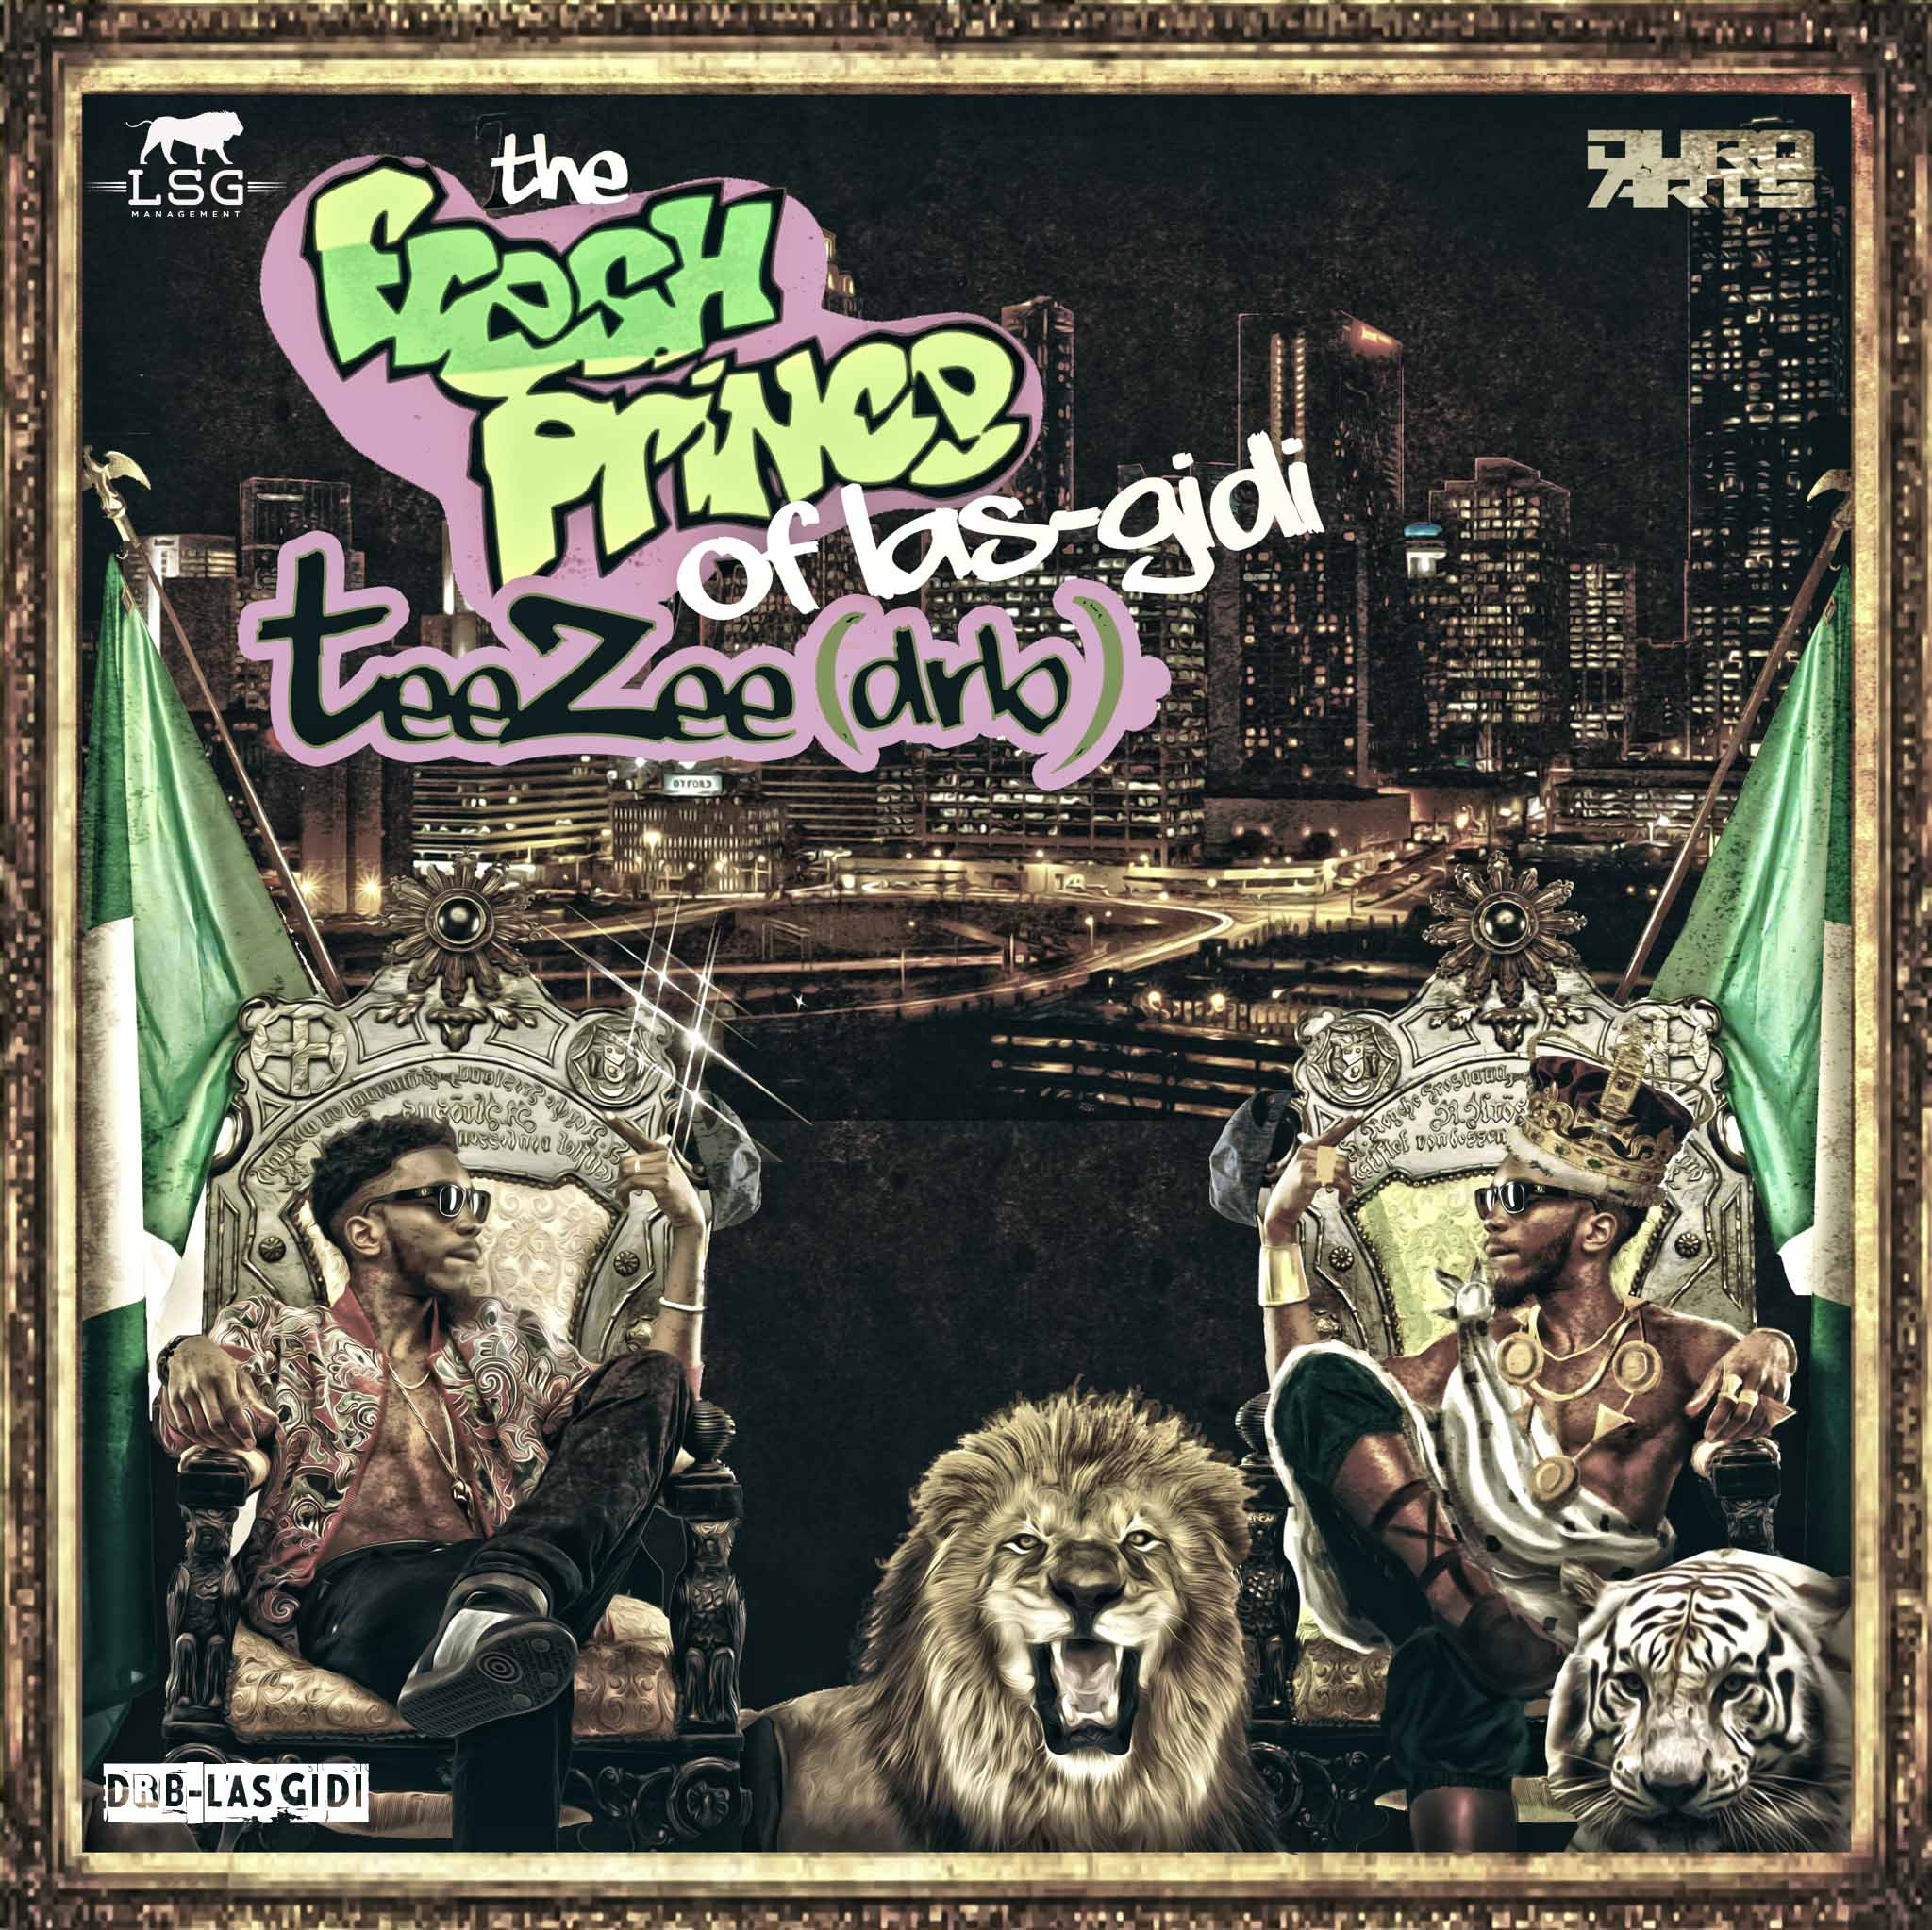 TeeZee Fresh Prince of LasGidi Mixtape